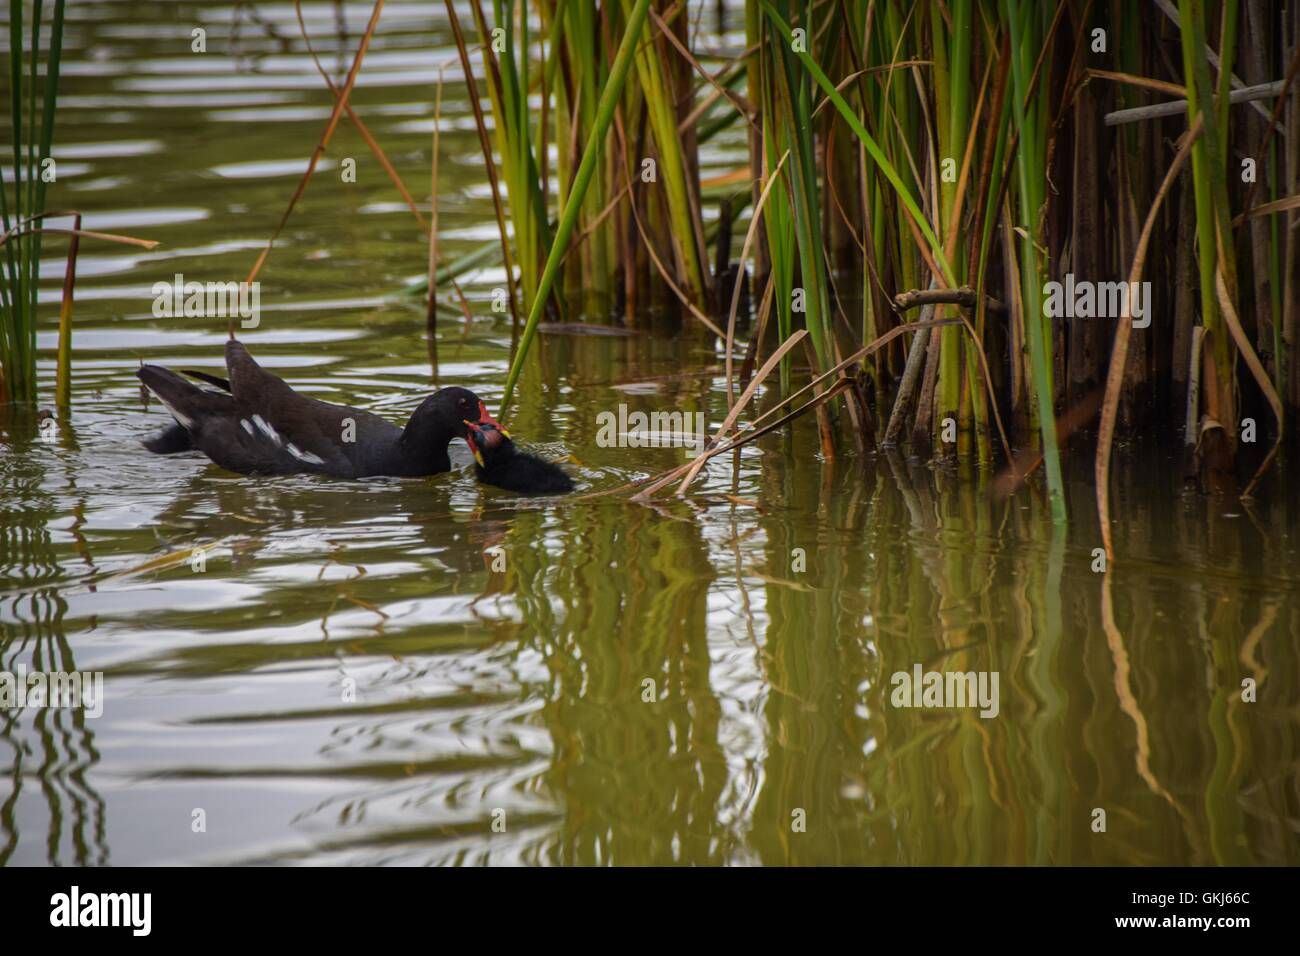 Young moorhen receiving food from adult - Stock Image